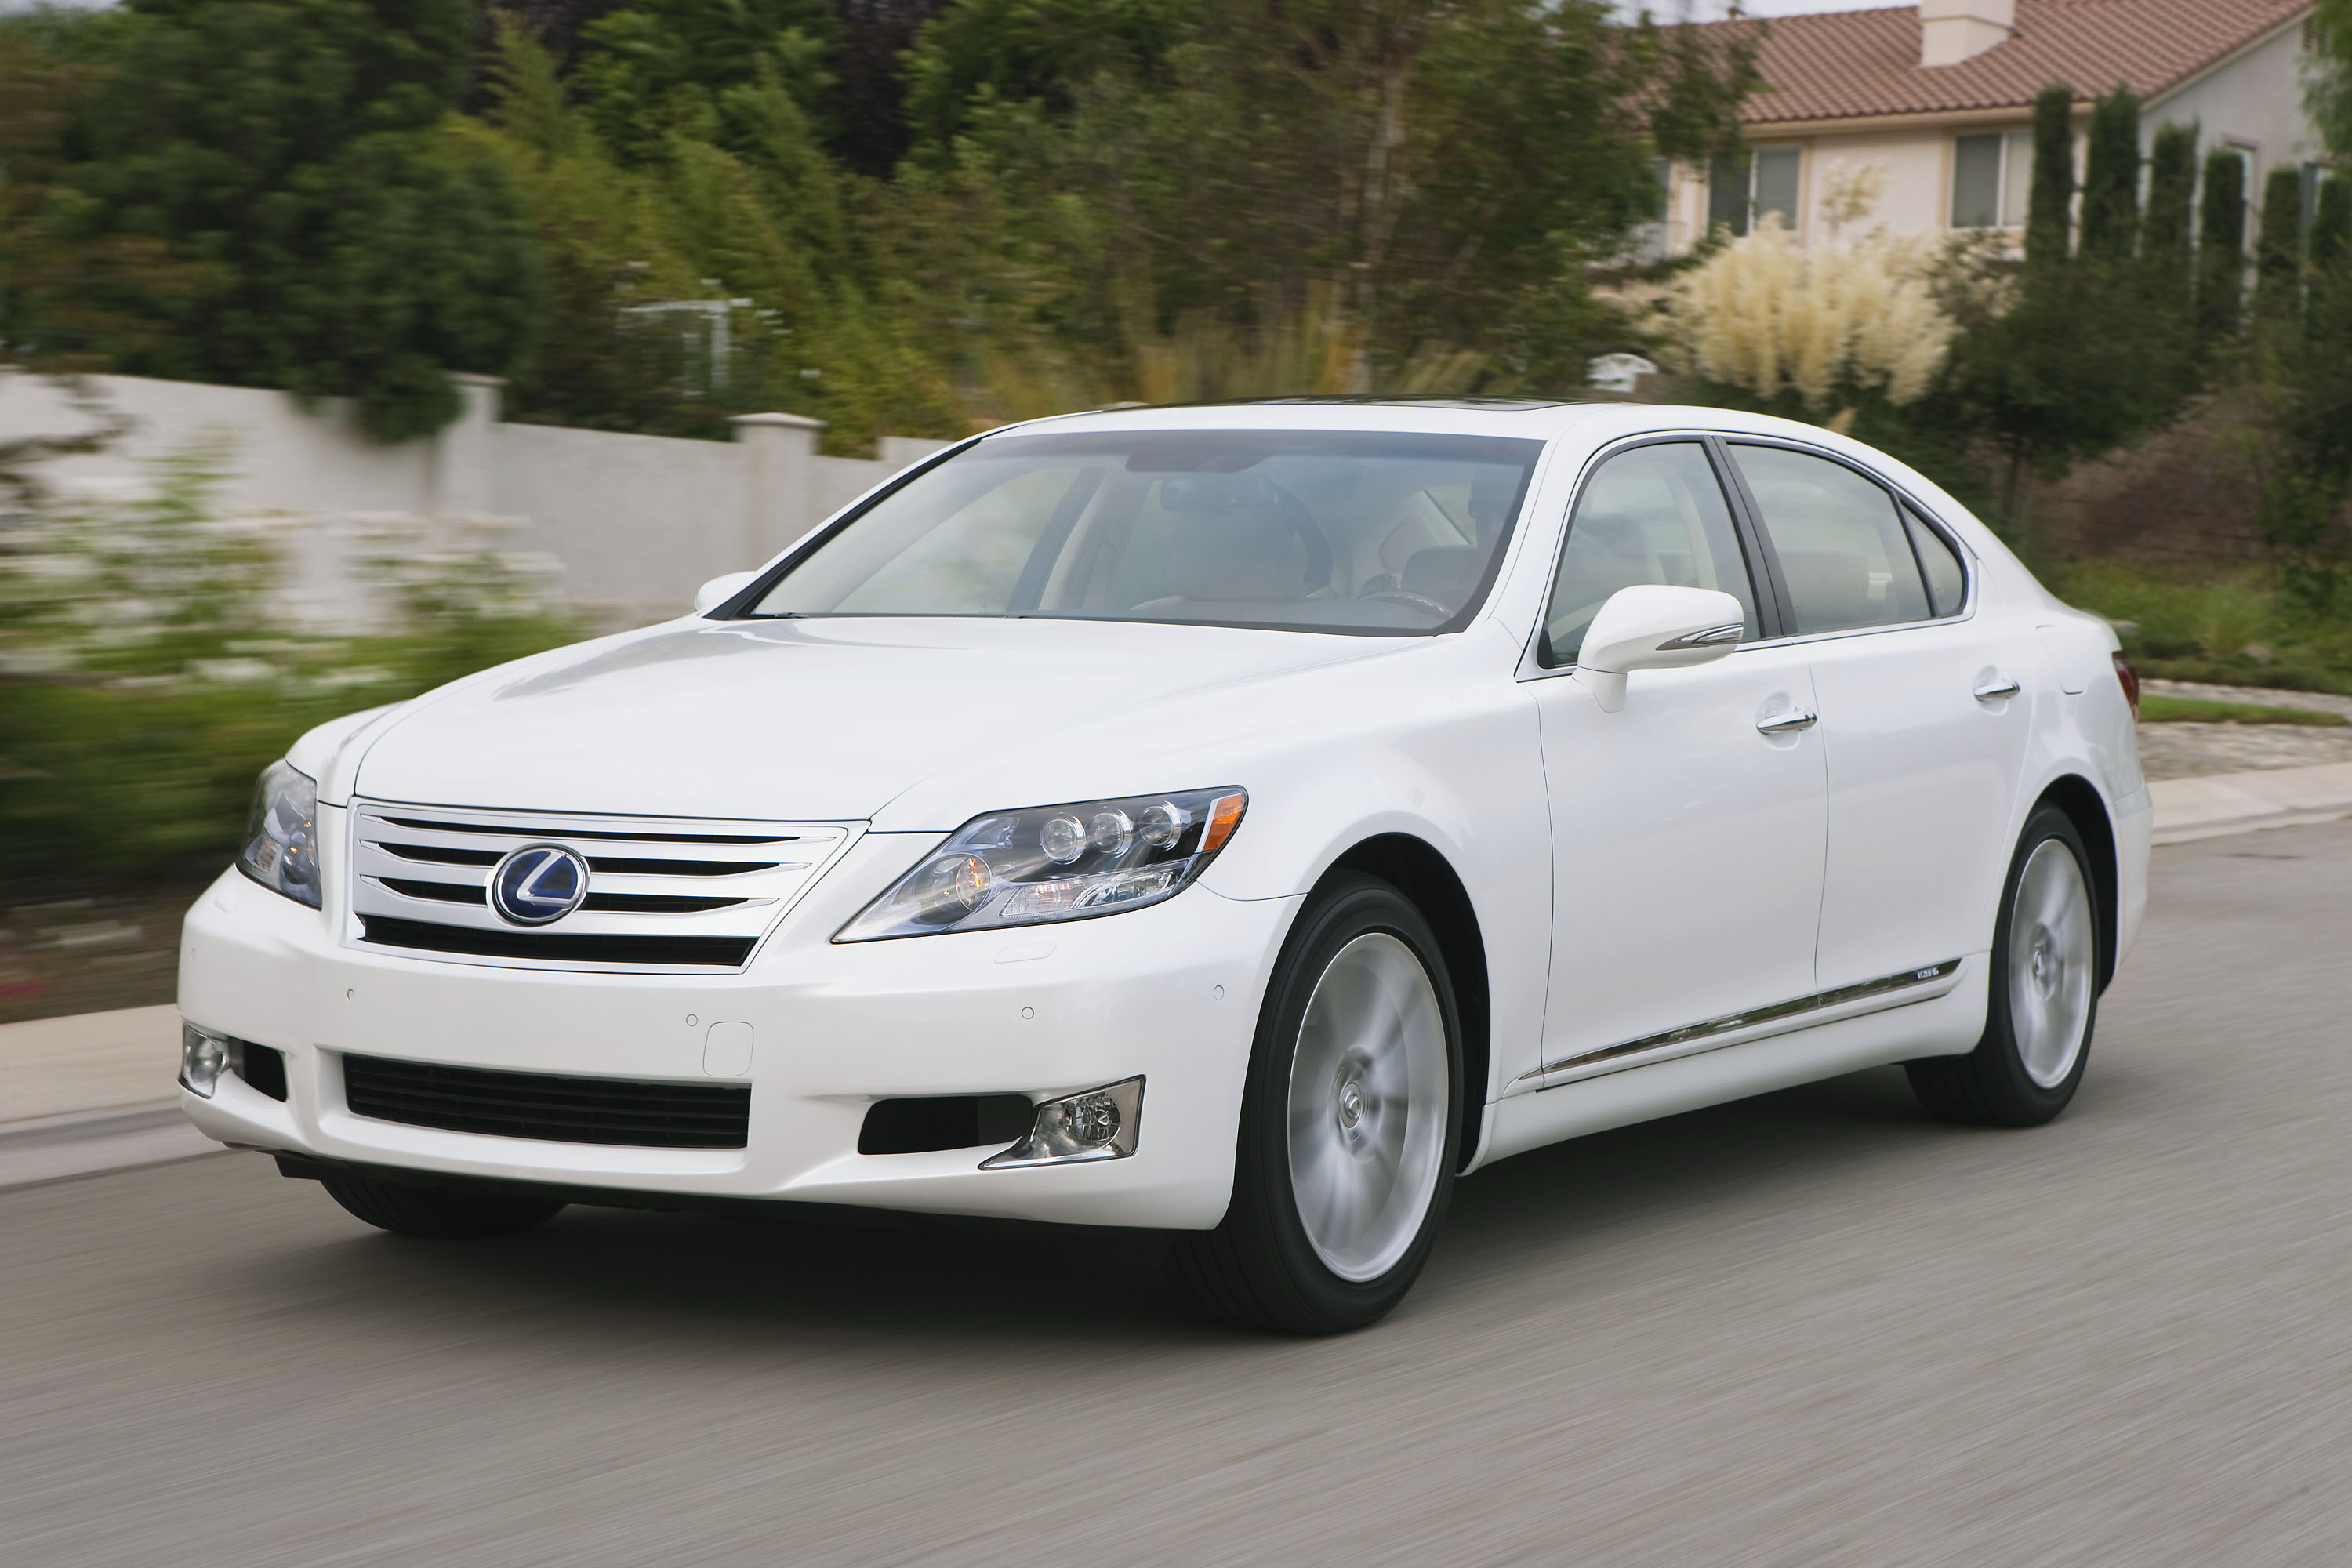 2011 Lexus LS 600h L Review Ratings Specs Prices and s